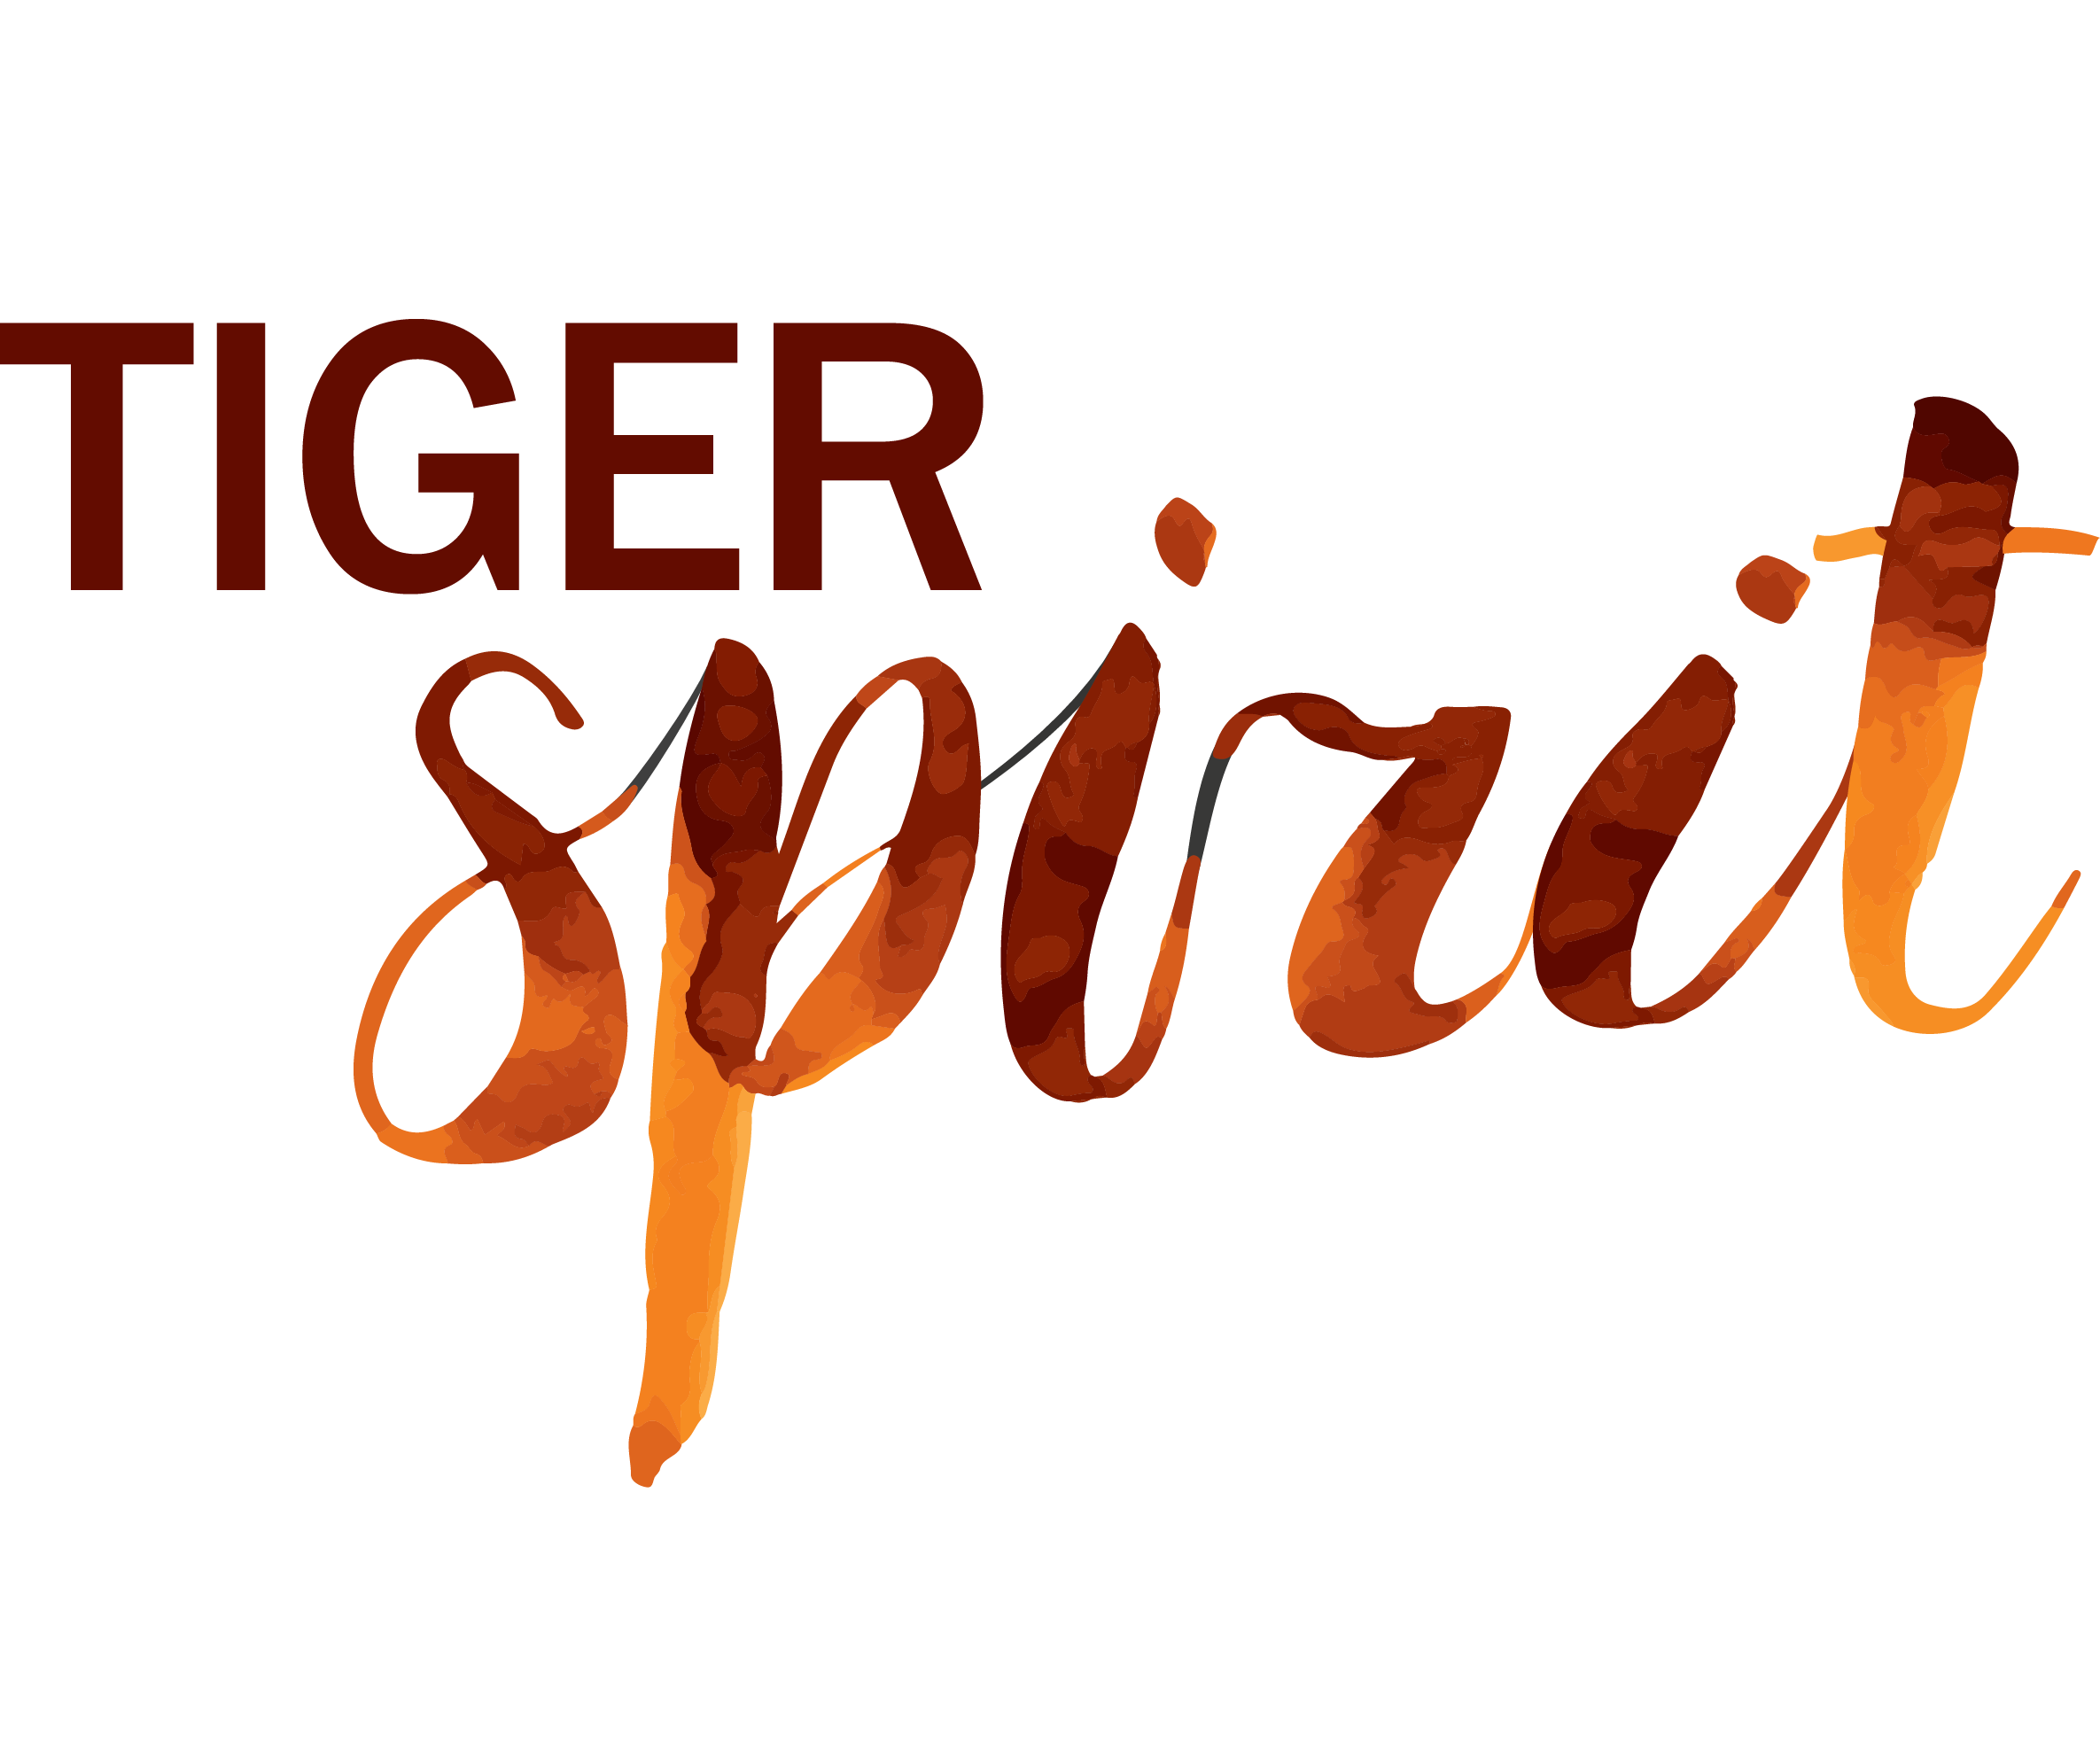 Yang-May Ooi ¦ Multimedia Author ¦ Tiger Spirit UK